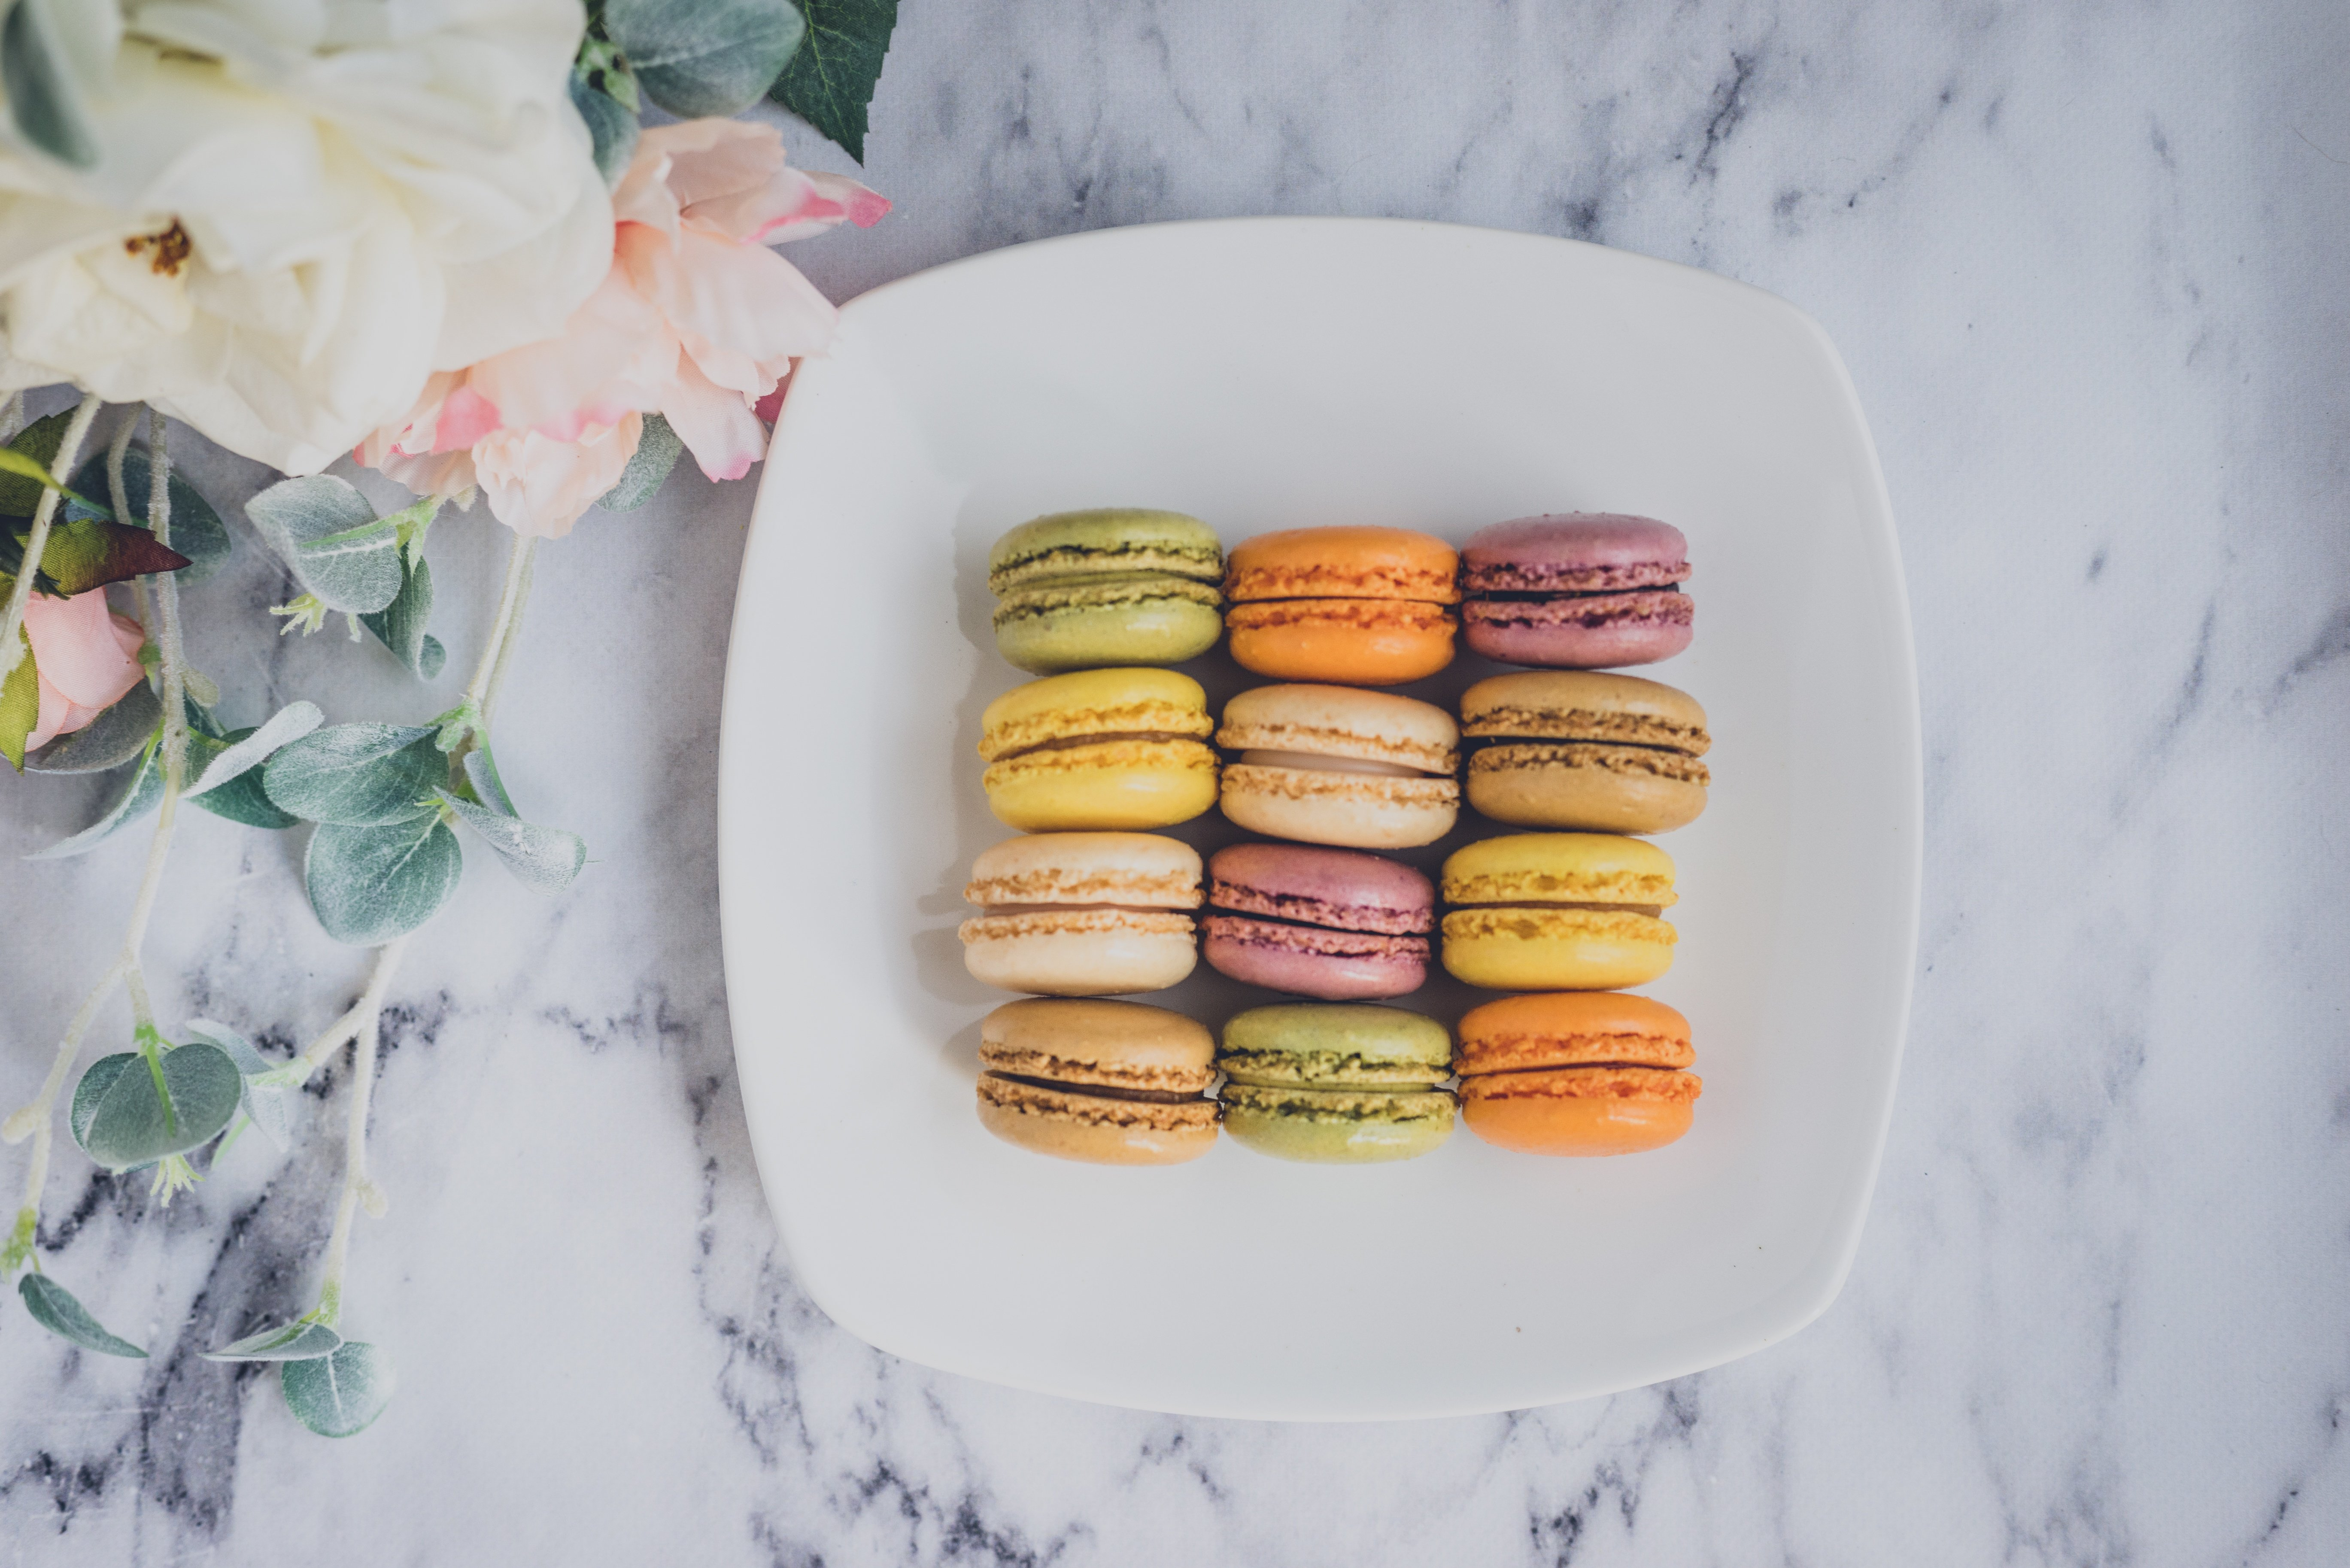 macarons flowers marble counter